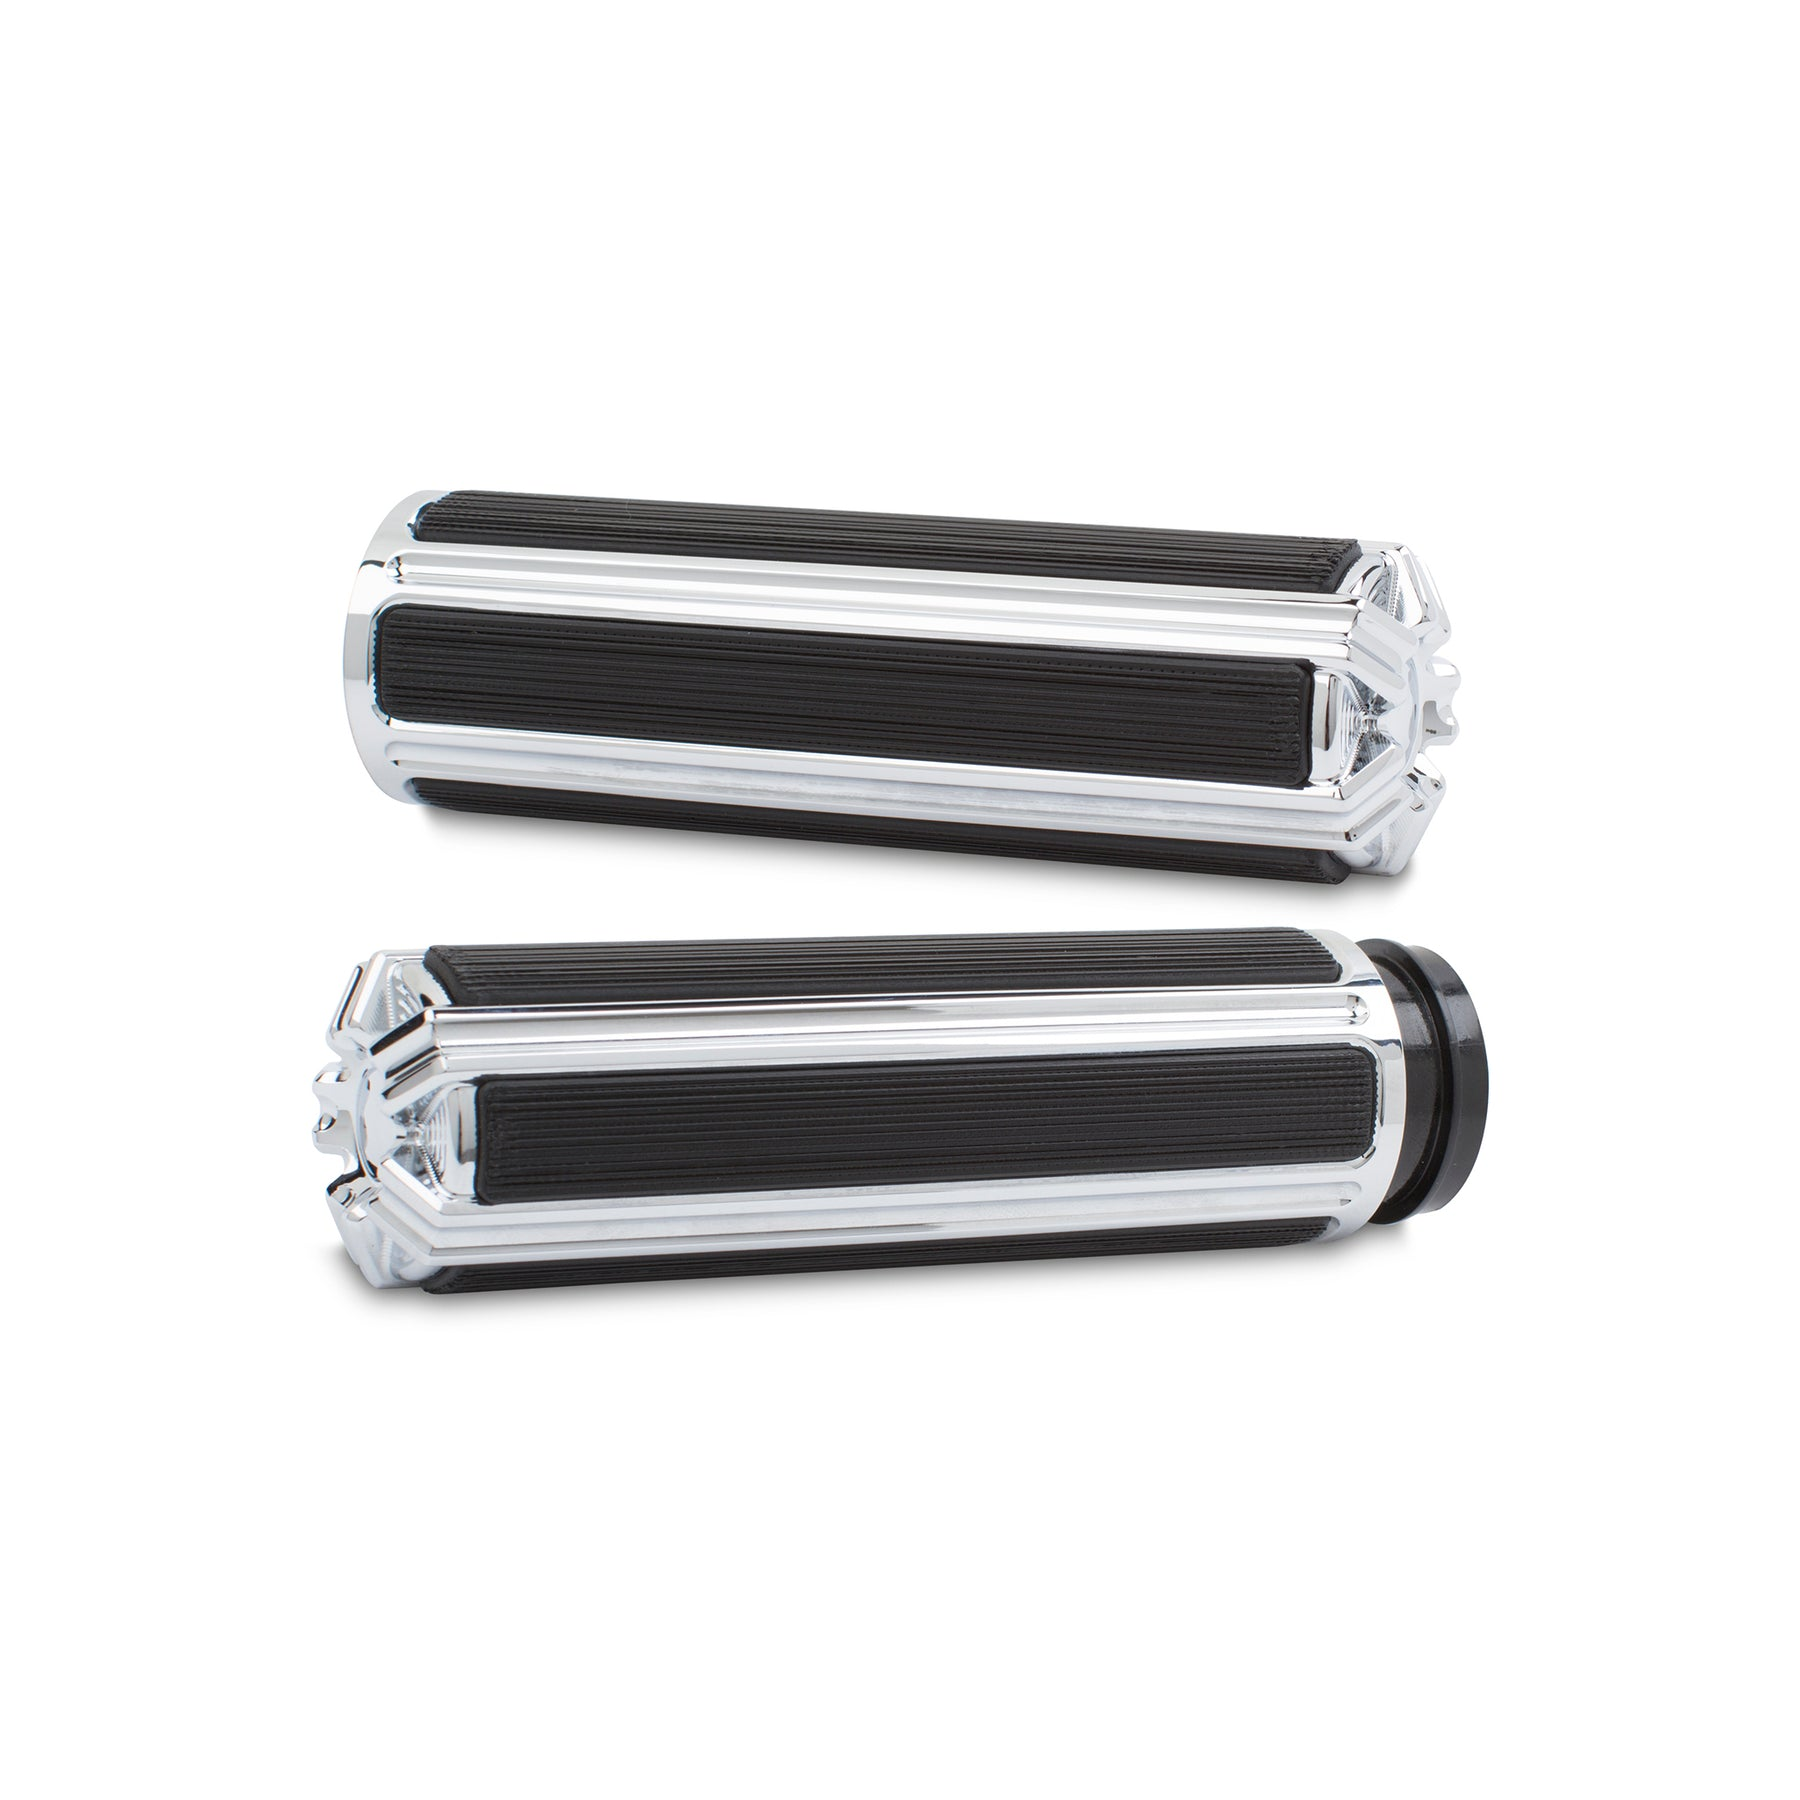 10-Gauge Comfort Grips, Chrome